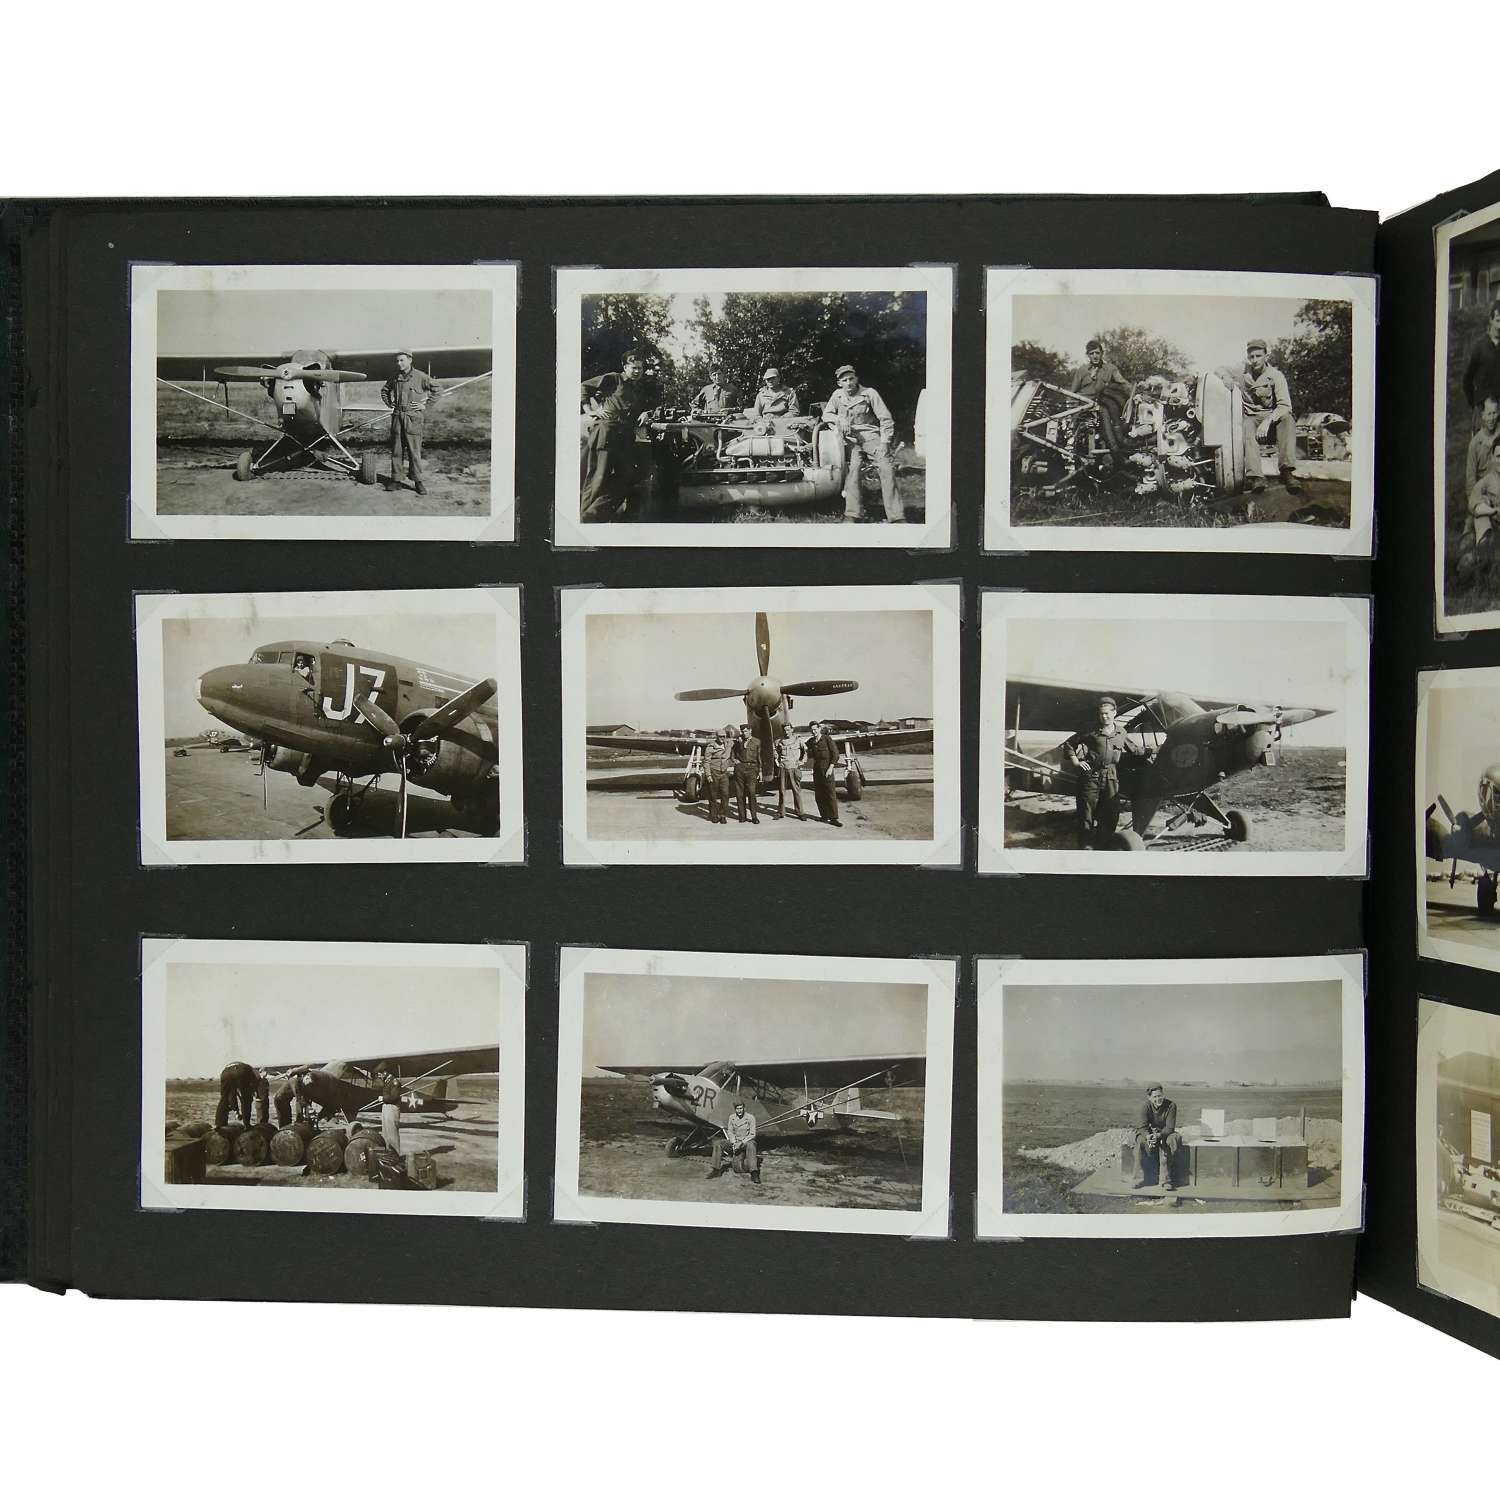 USAAF 9th AAF photograph album